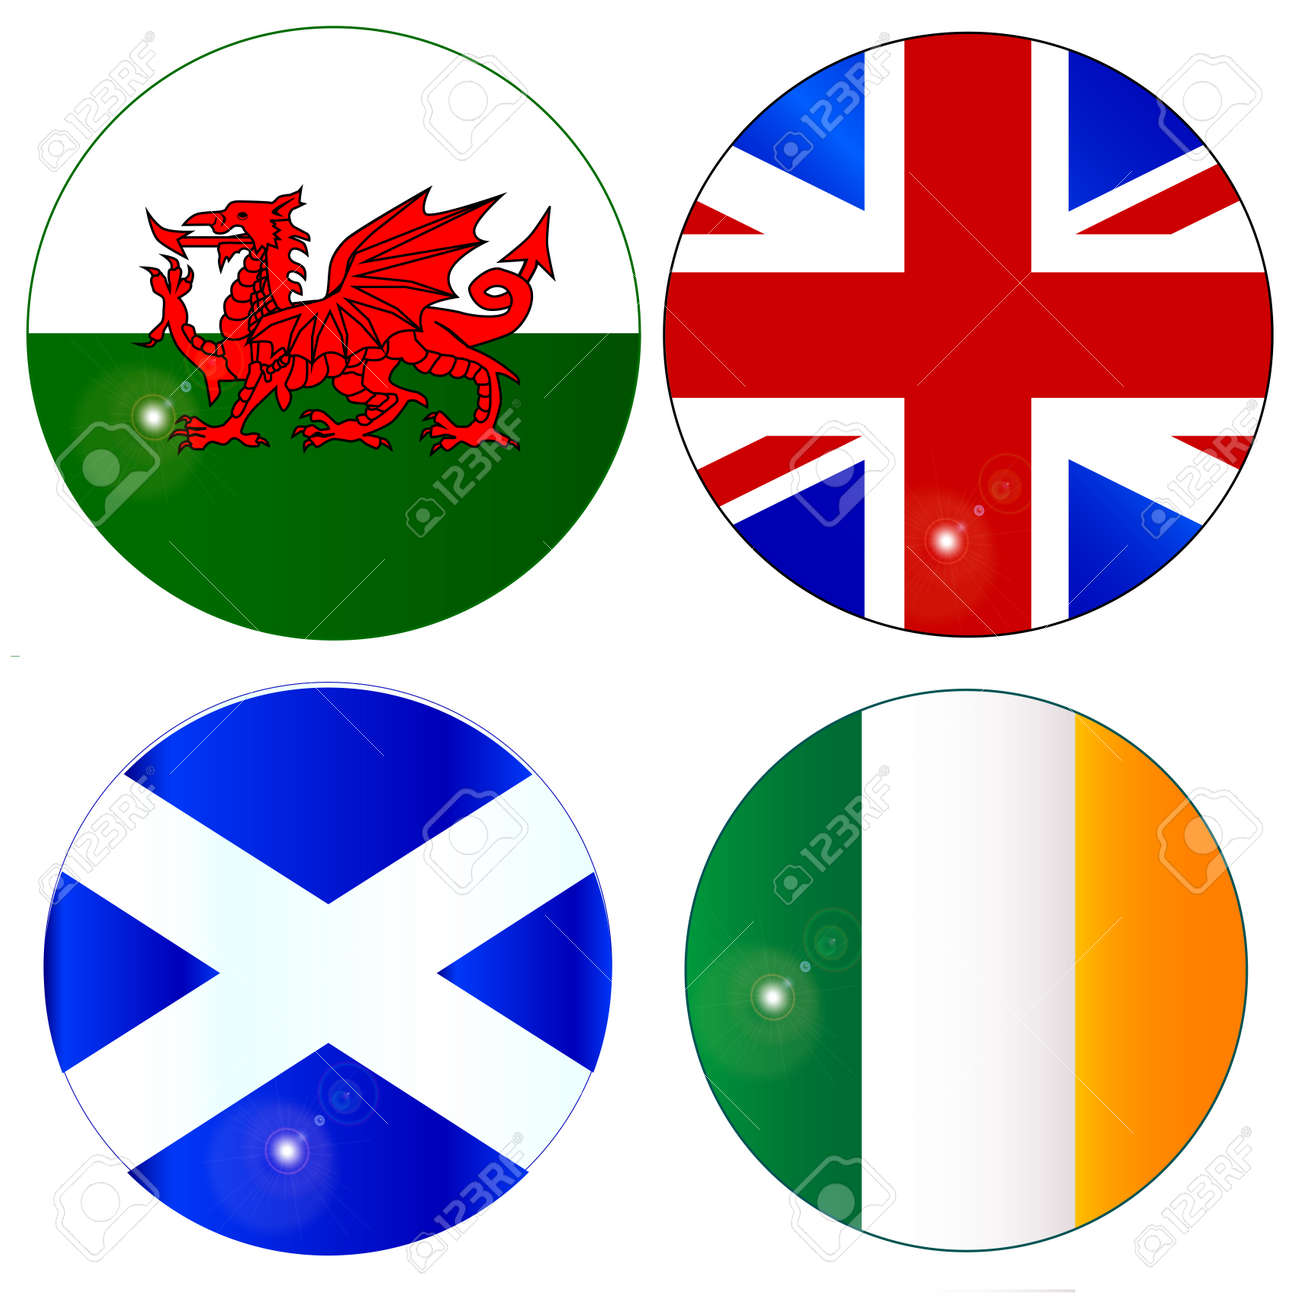 the official flag for scotland wales eire ireland and england